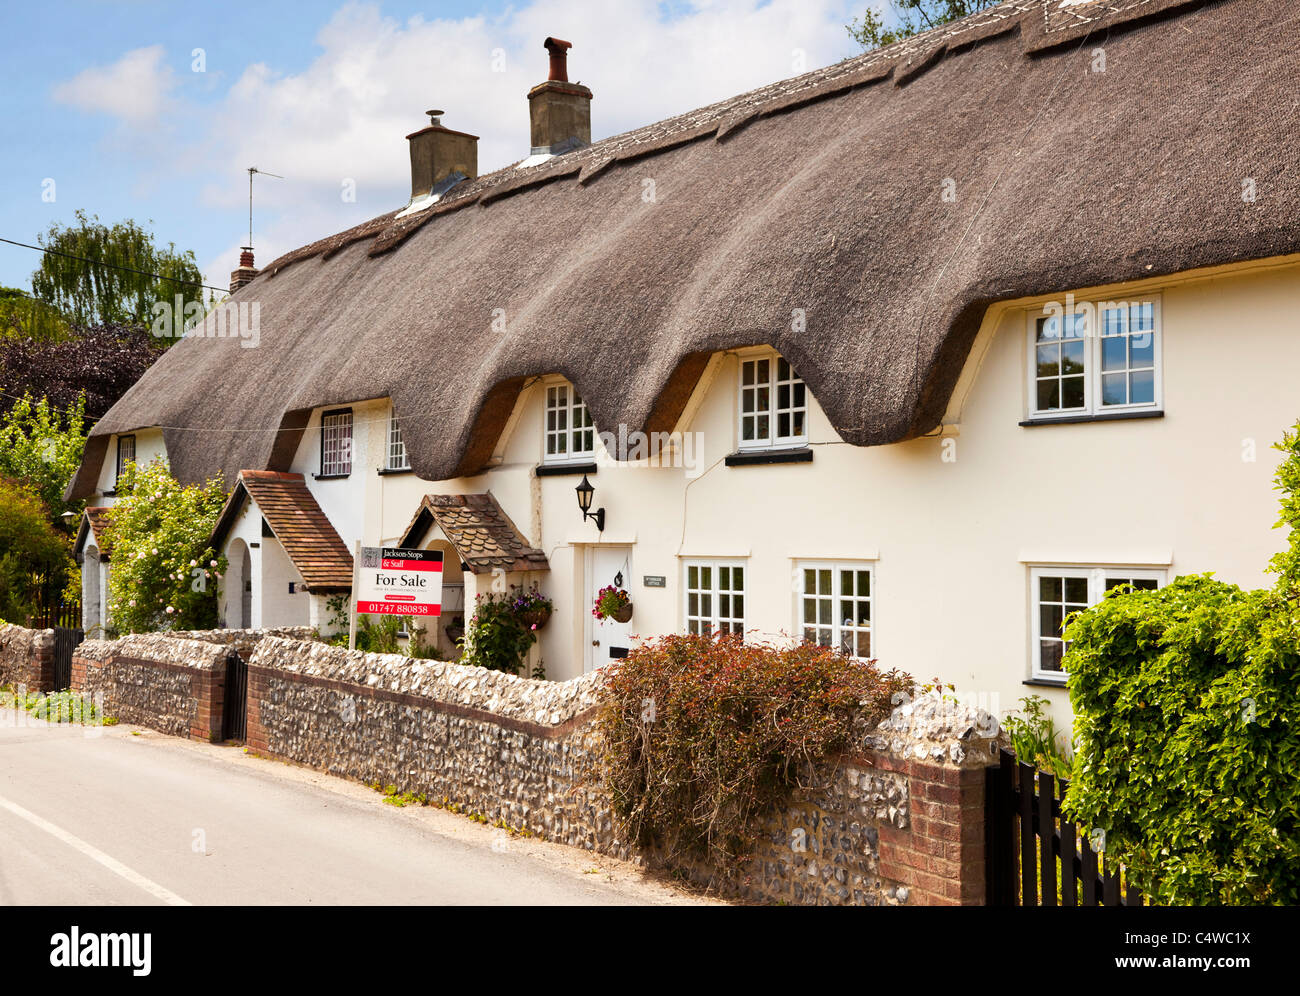 for scotland holiday england cheshire rent com to apartment the sale cottages in old rookery